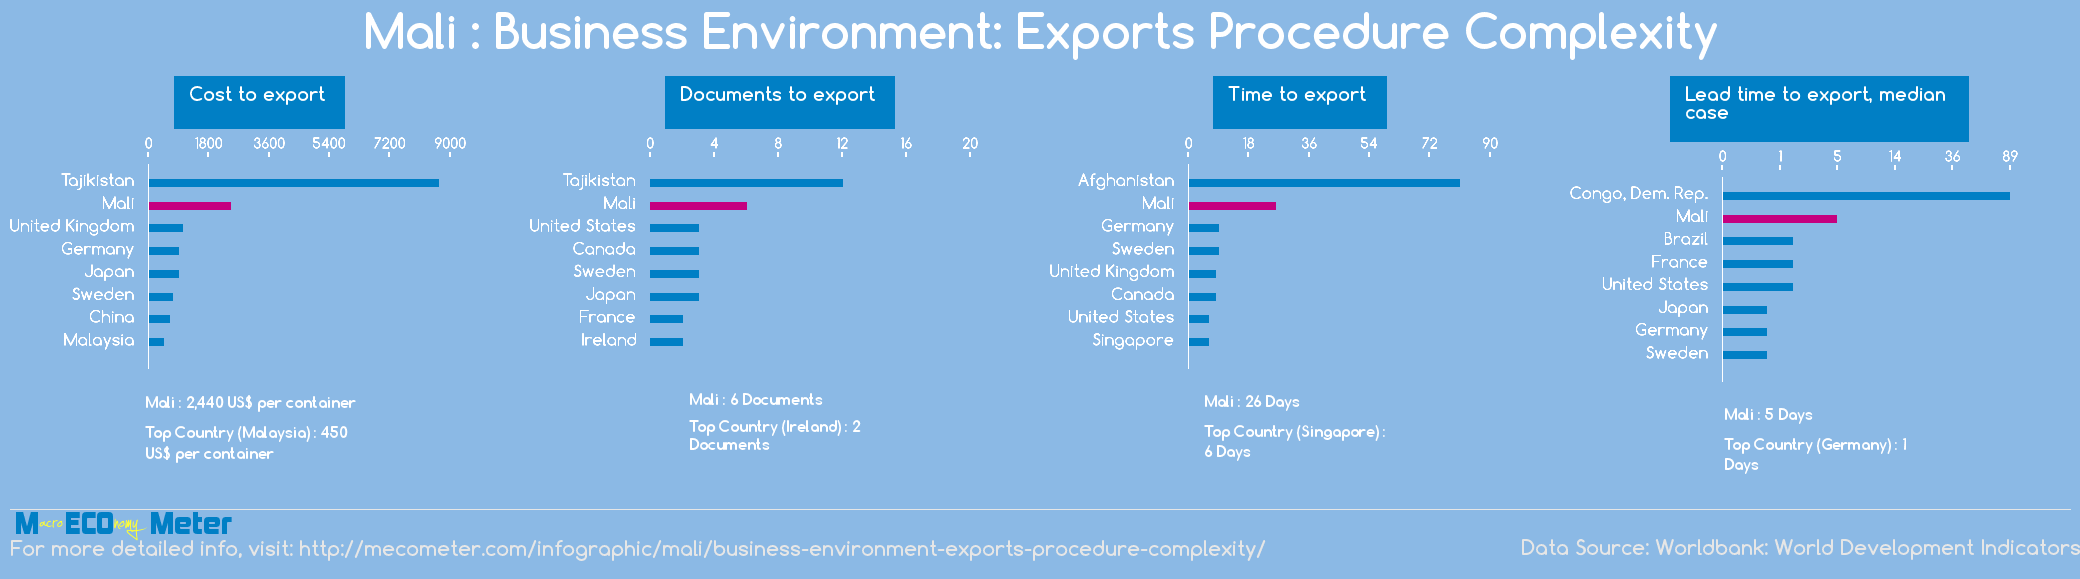 Mali : Business Environment: Exports Procedure Complexity